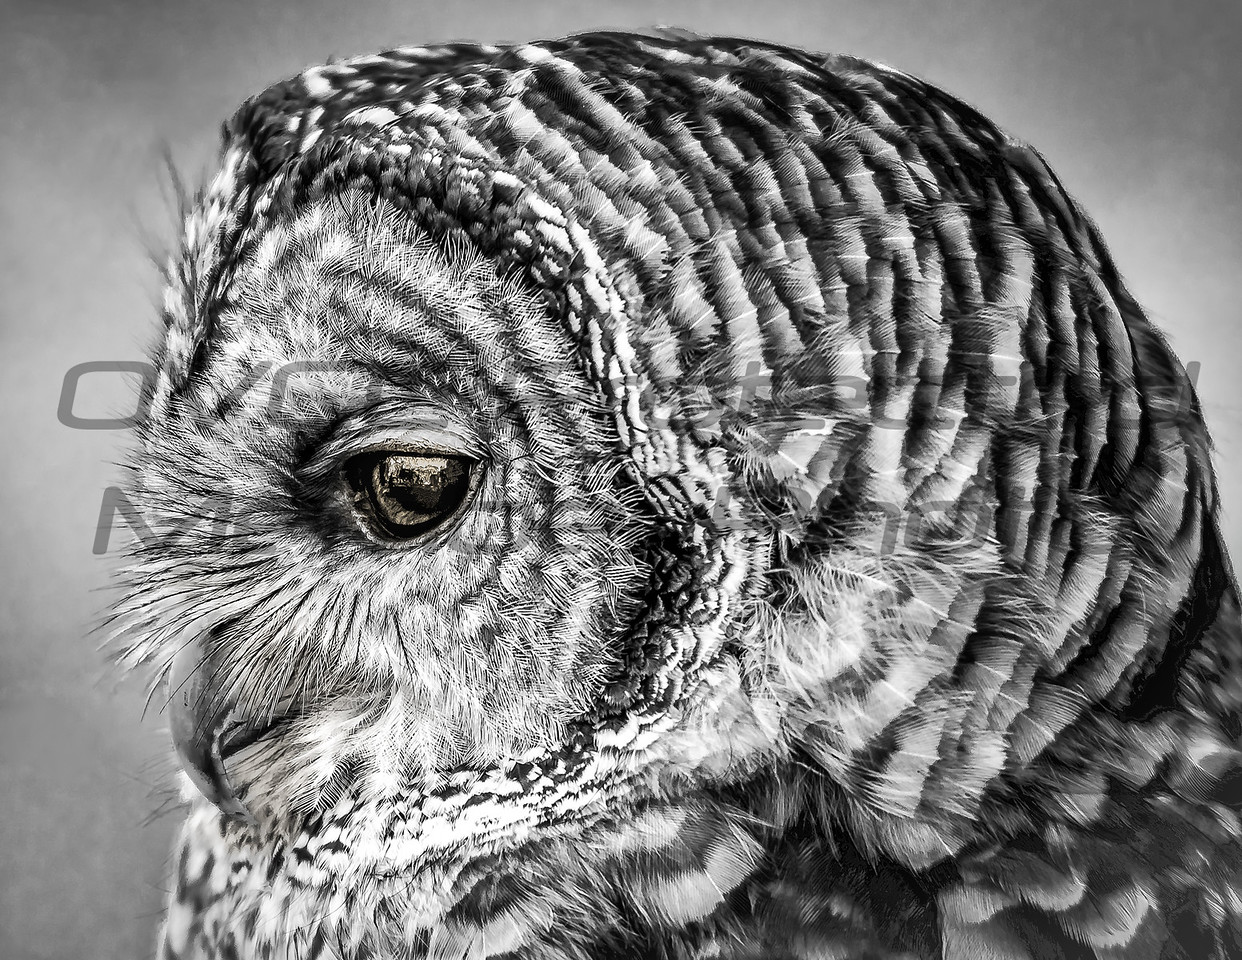 Barred Owl Side B&W by Jonathan Neeld -  jn4photo@gmail.com